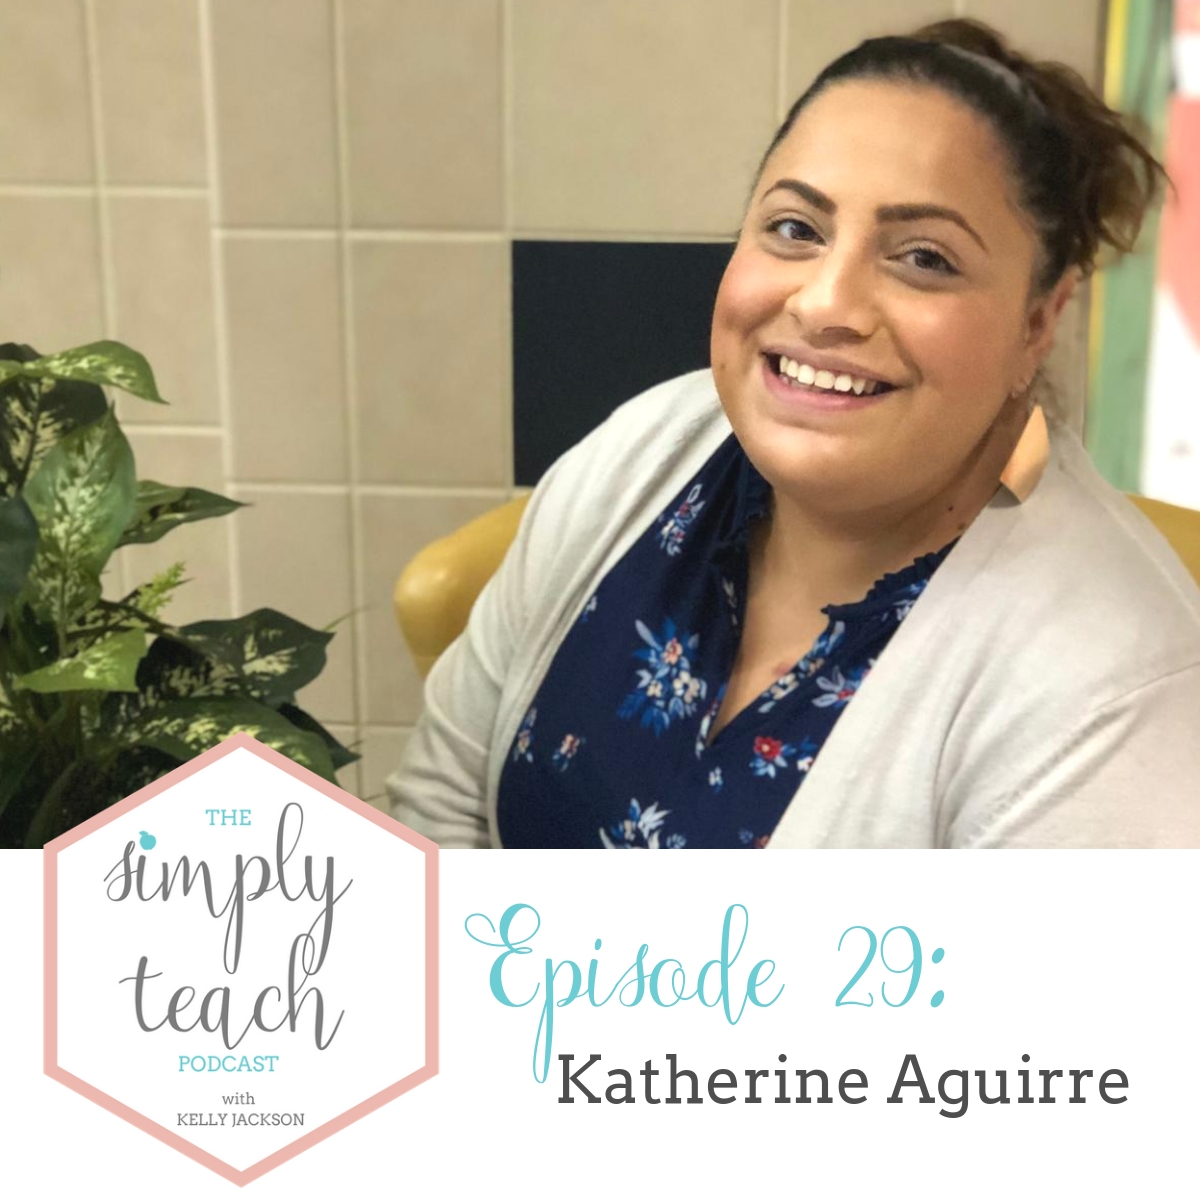 Simply Teach- a podcast for teachers, by teachers. In this episode we talk about all things related to working with ELL students. Regardless of where you teach, we are all teaching students whose native language is not English. The strategies Katherine shares will be really helpful to any teacher looking to improve their way of teaching and communicating with students.